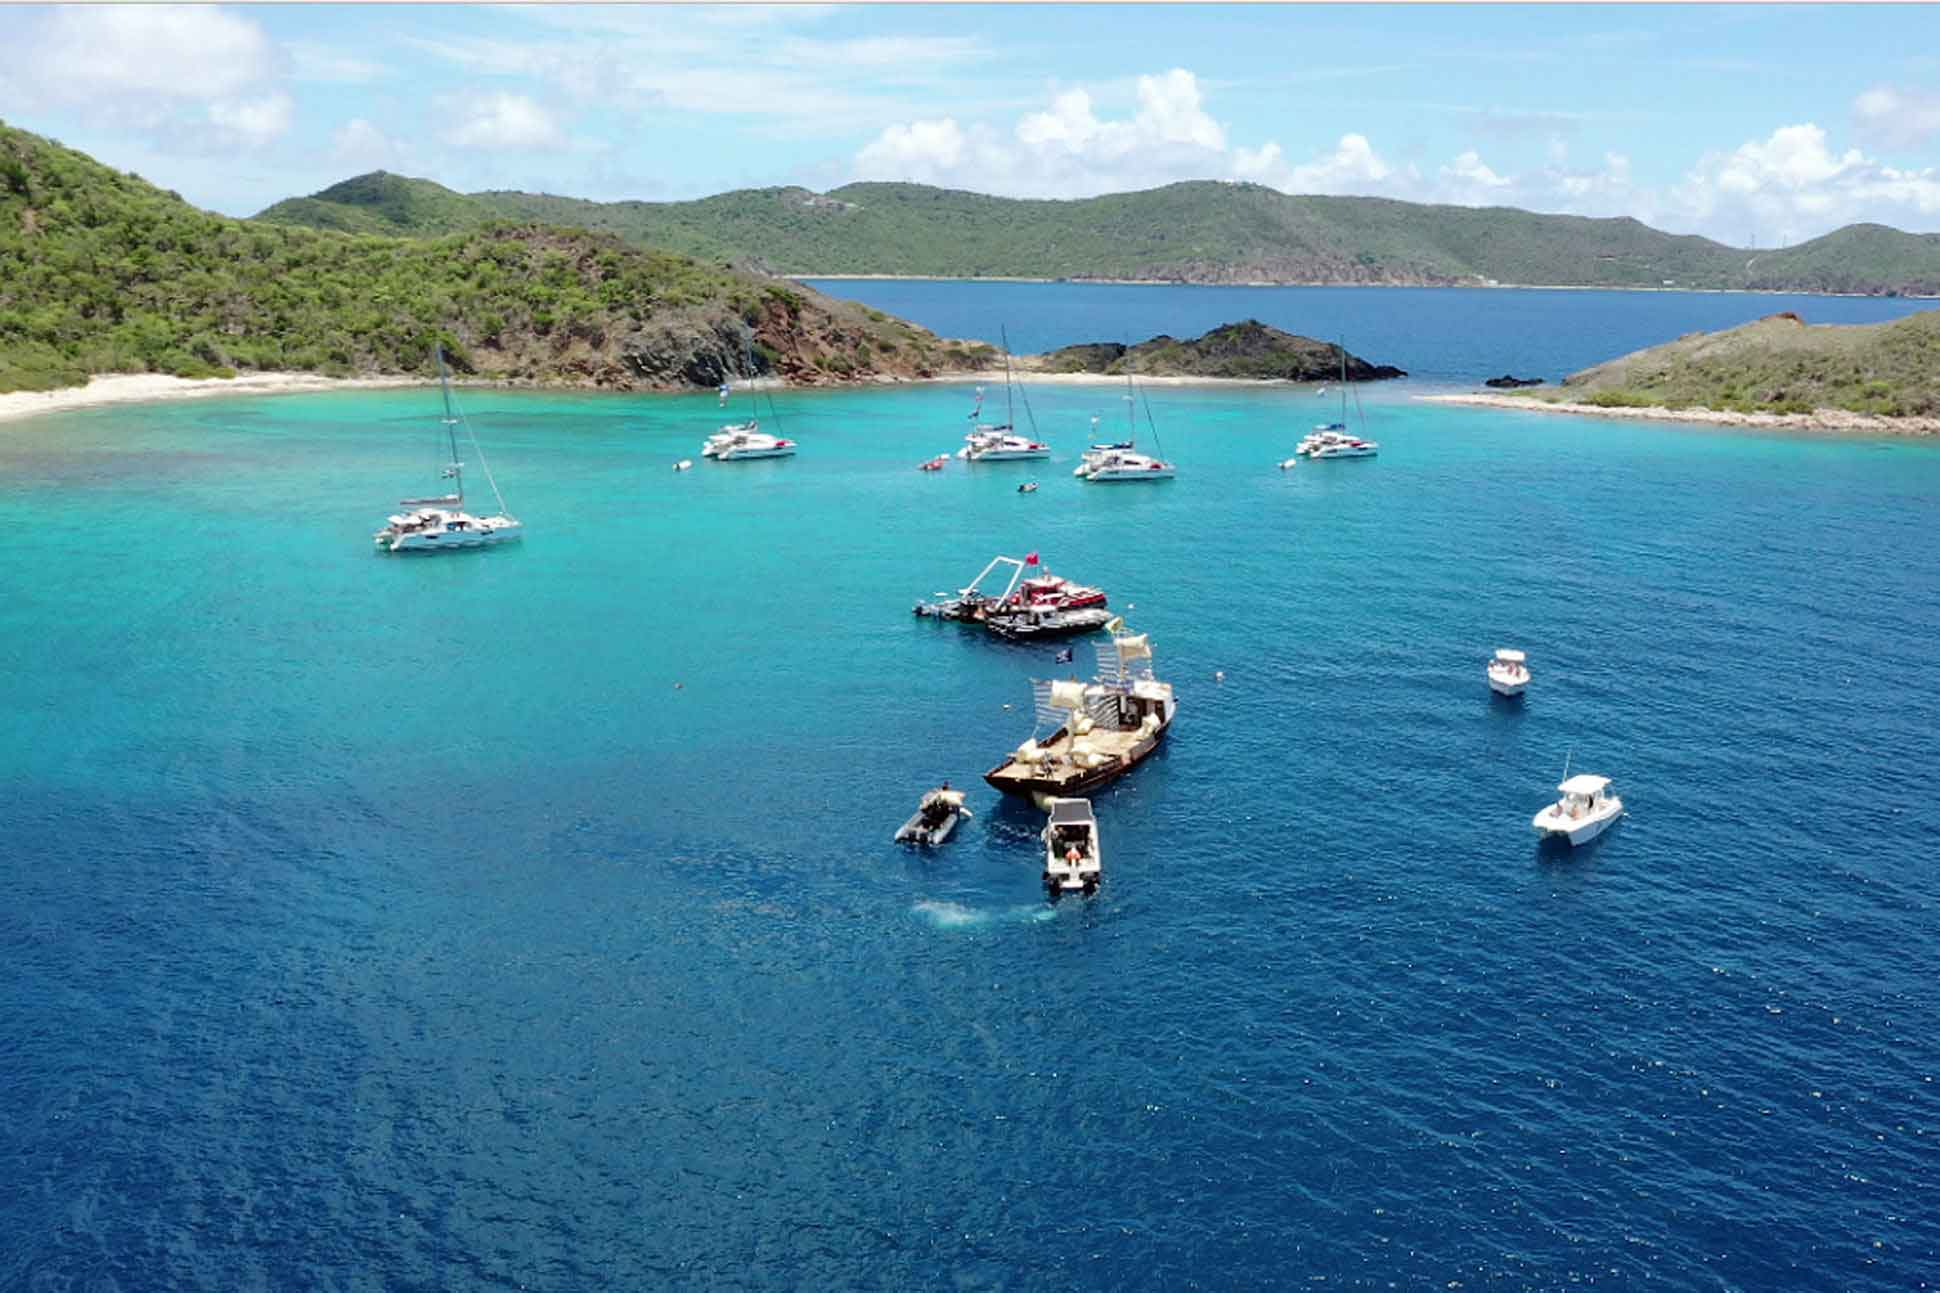 Beyond the reef, British Virgin Islands